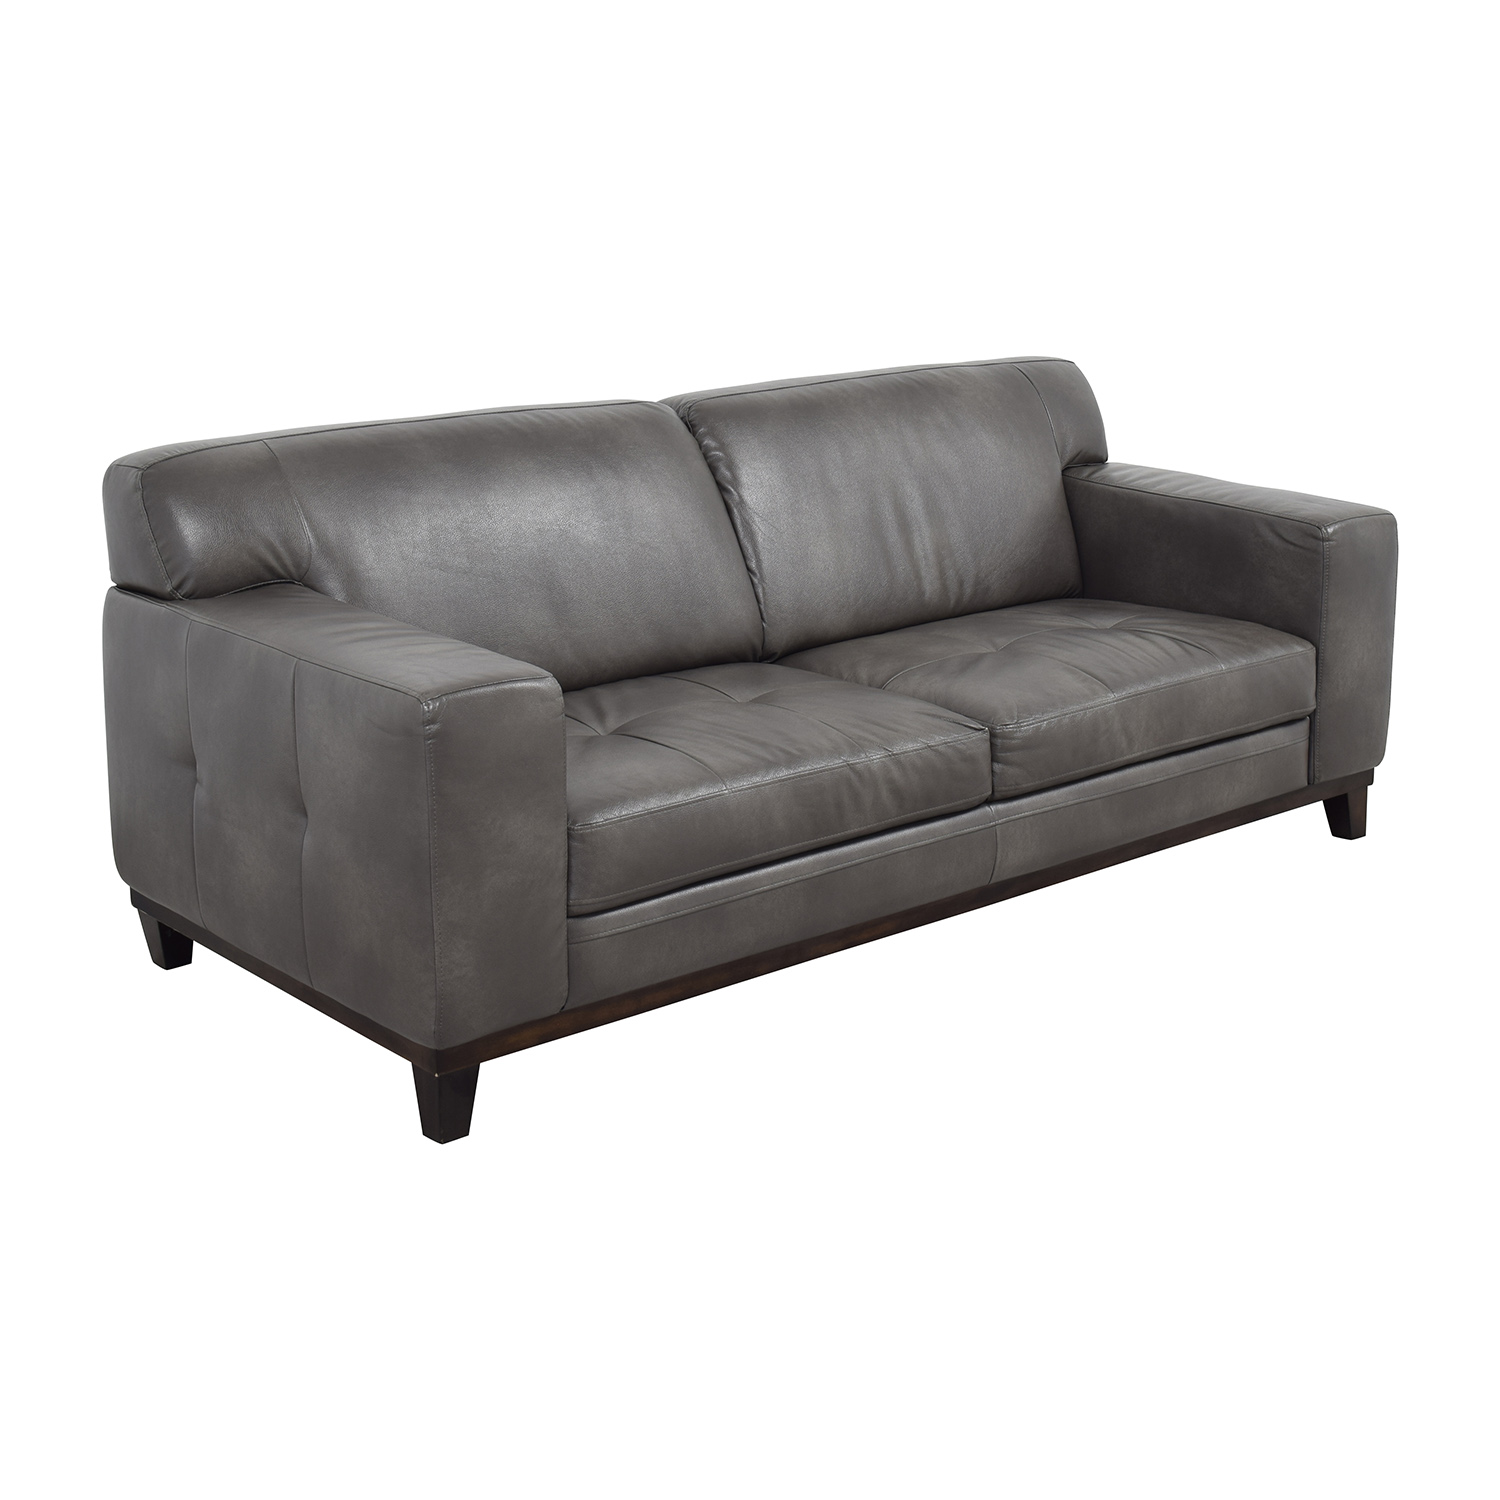 buy Raymour & Flanigan Grey Leather Couch Raymour & Flanigan